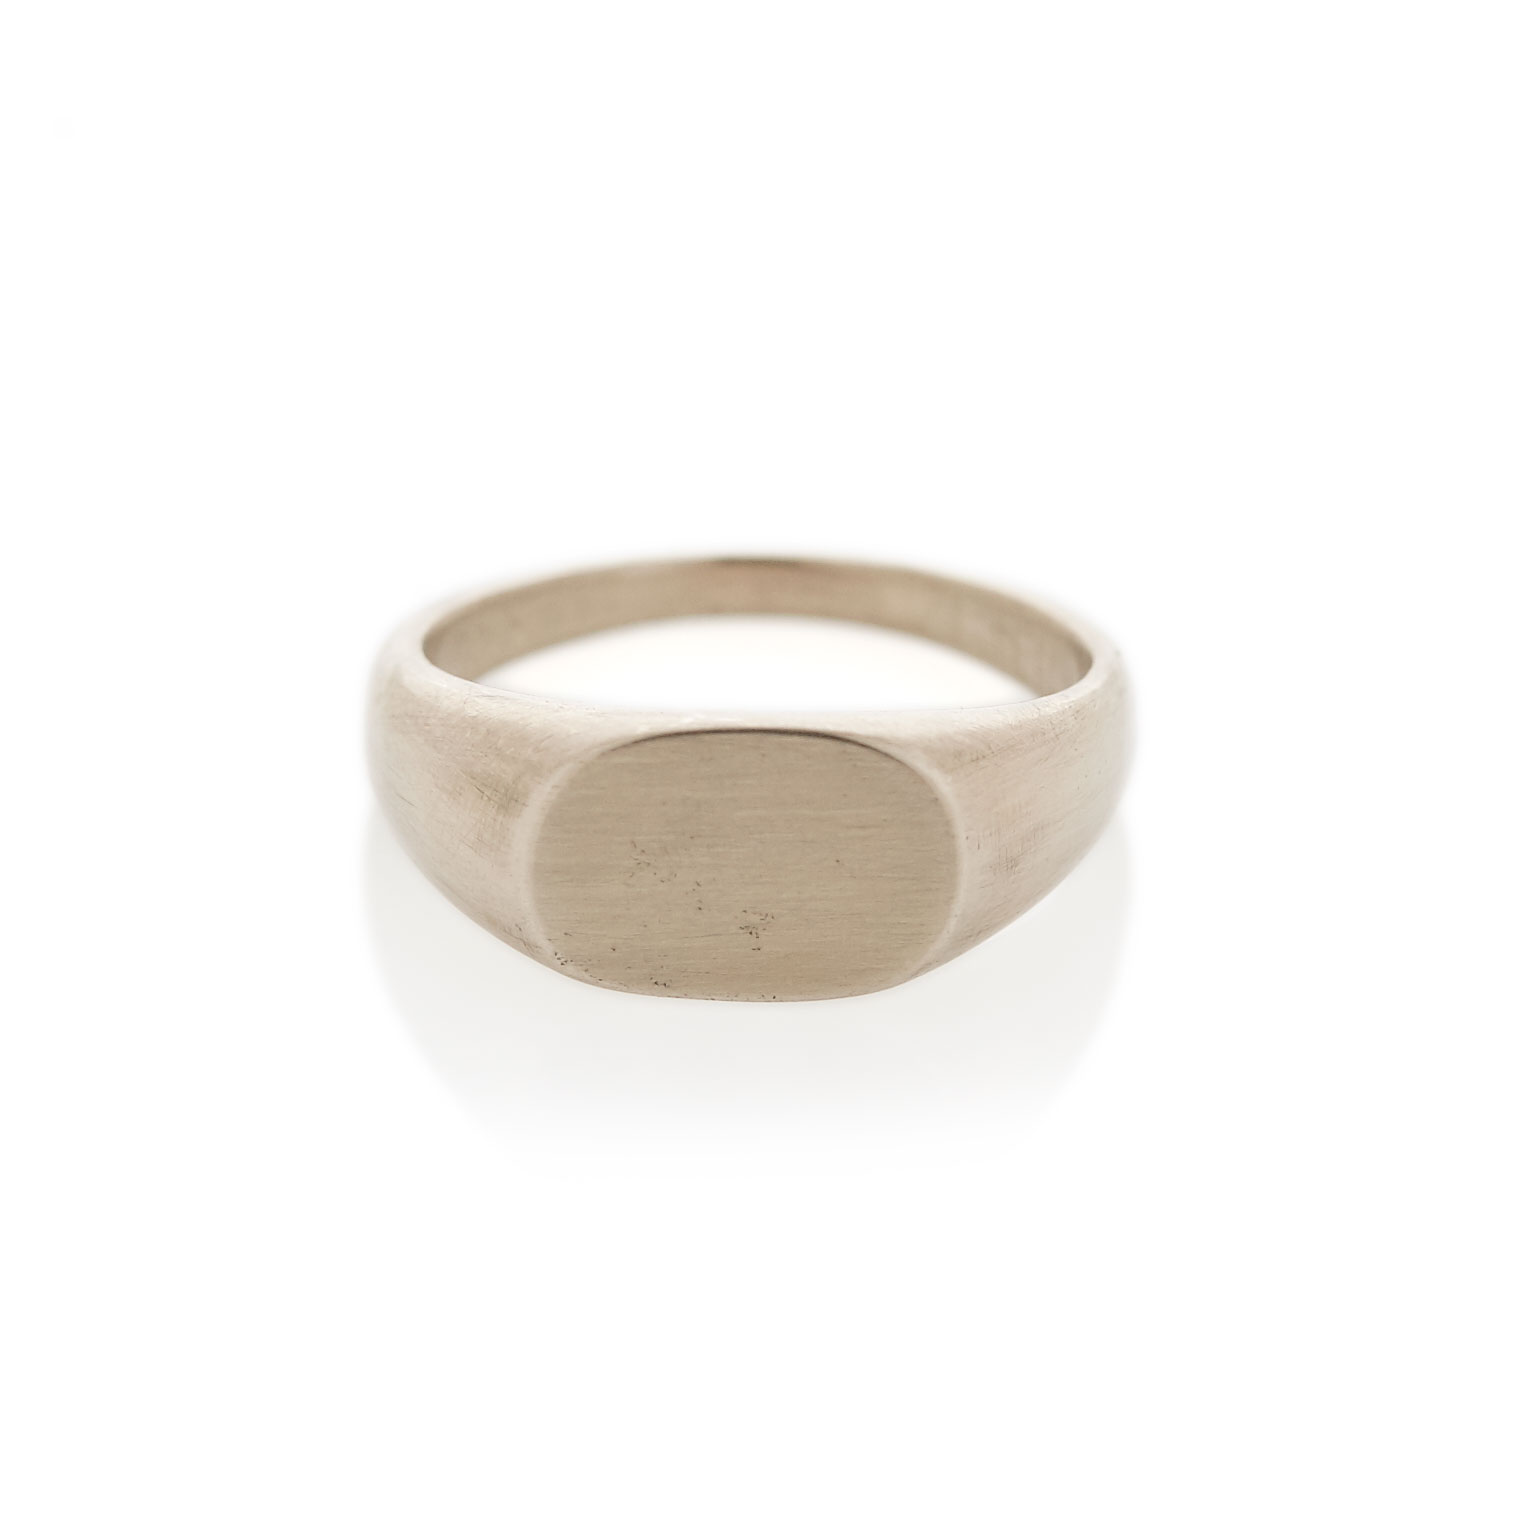 White gold oval signet ring